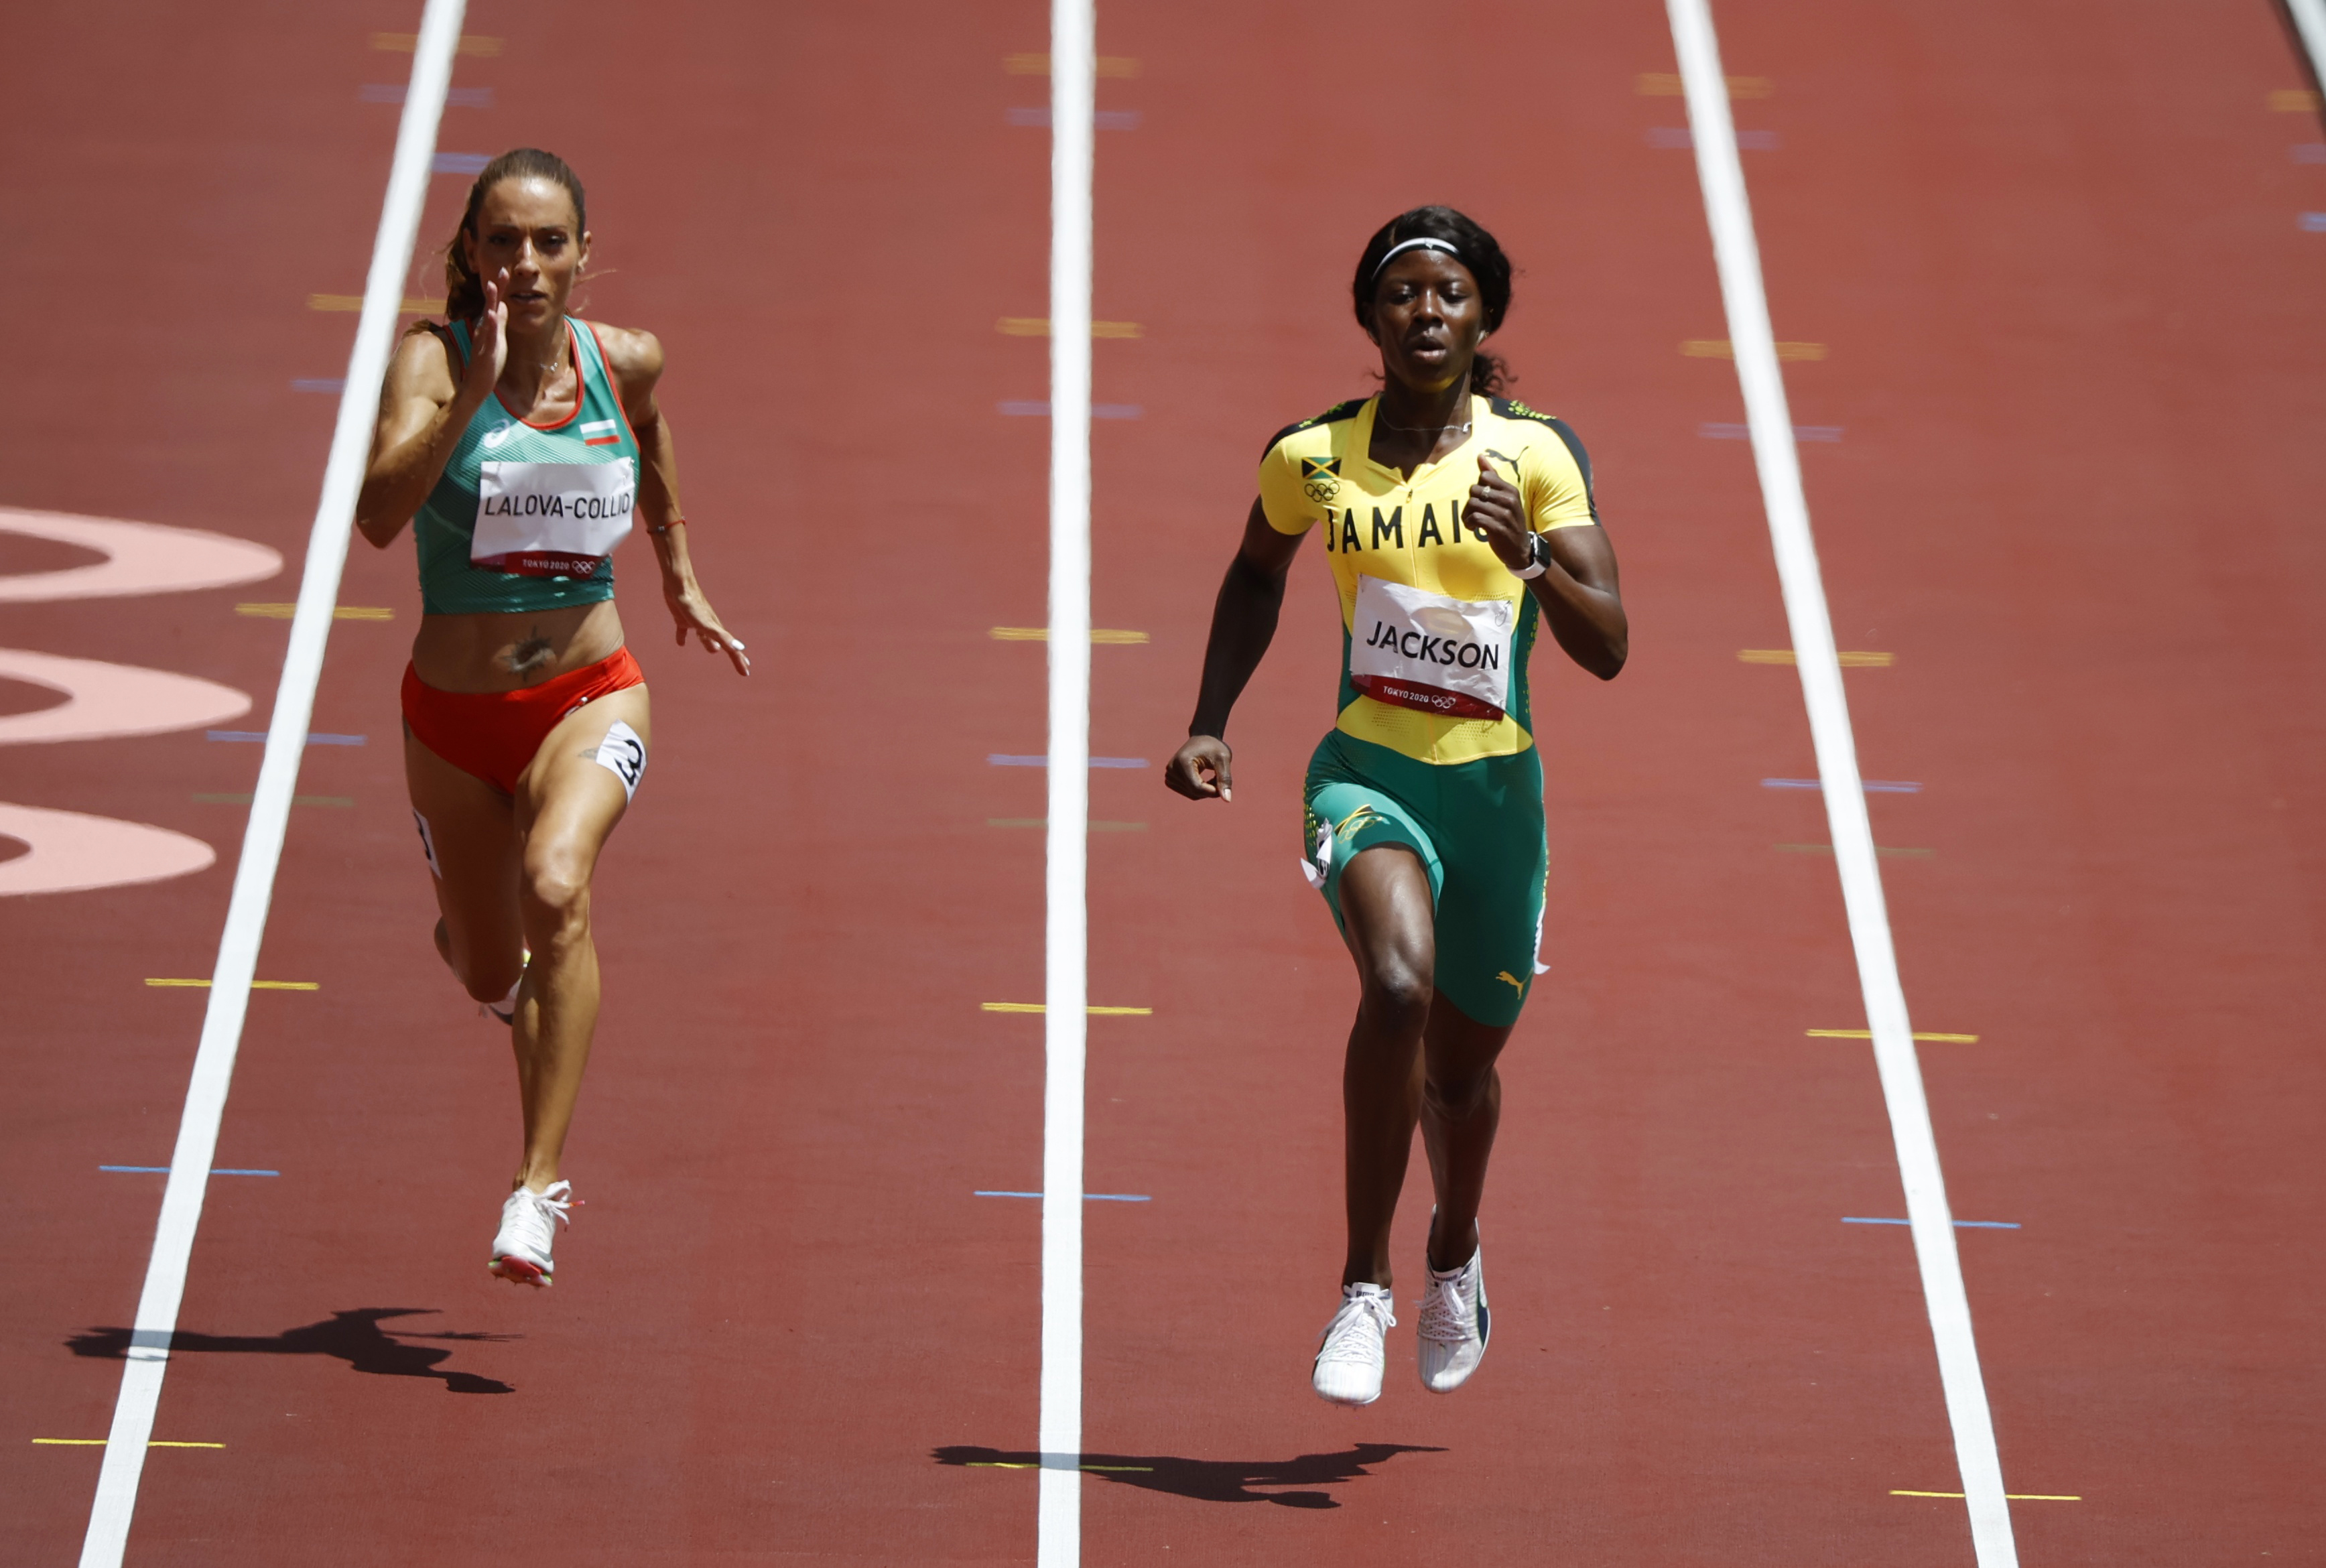 Tokyo 2020 Olympics - Athletics - Women's 200m - Round 1 - Olympic Stadium, Tokyo, Japan - August 2, 2021. Ivet Lalova-Collio of Bulgaria and Shericka Jackson of Jamaica in action during Heat 5 REUTERS/Phil Noble